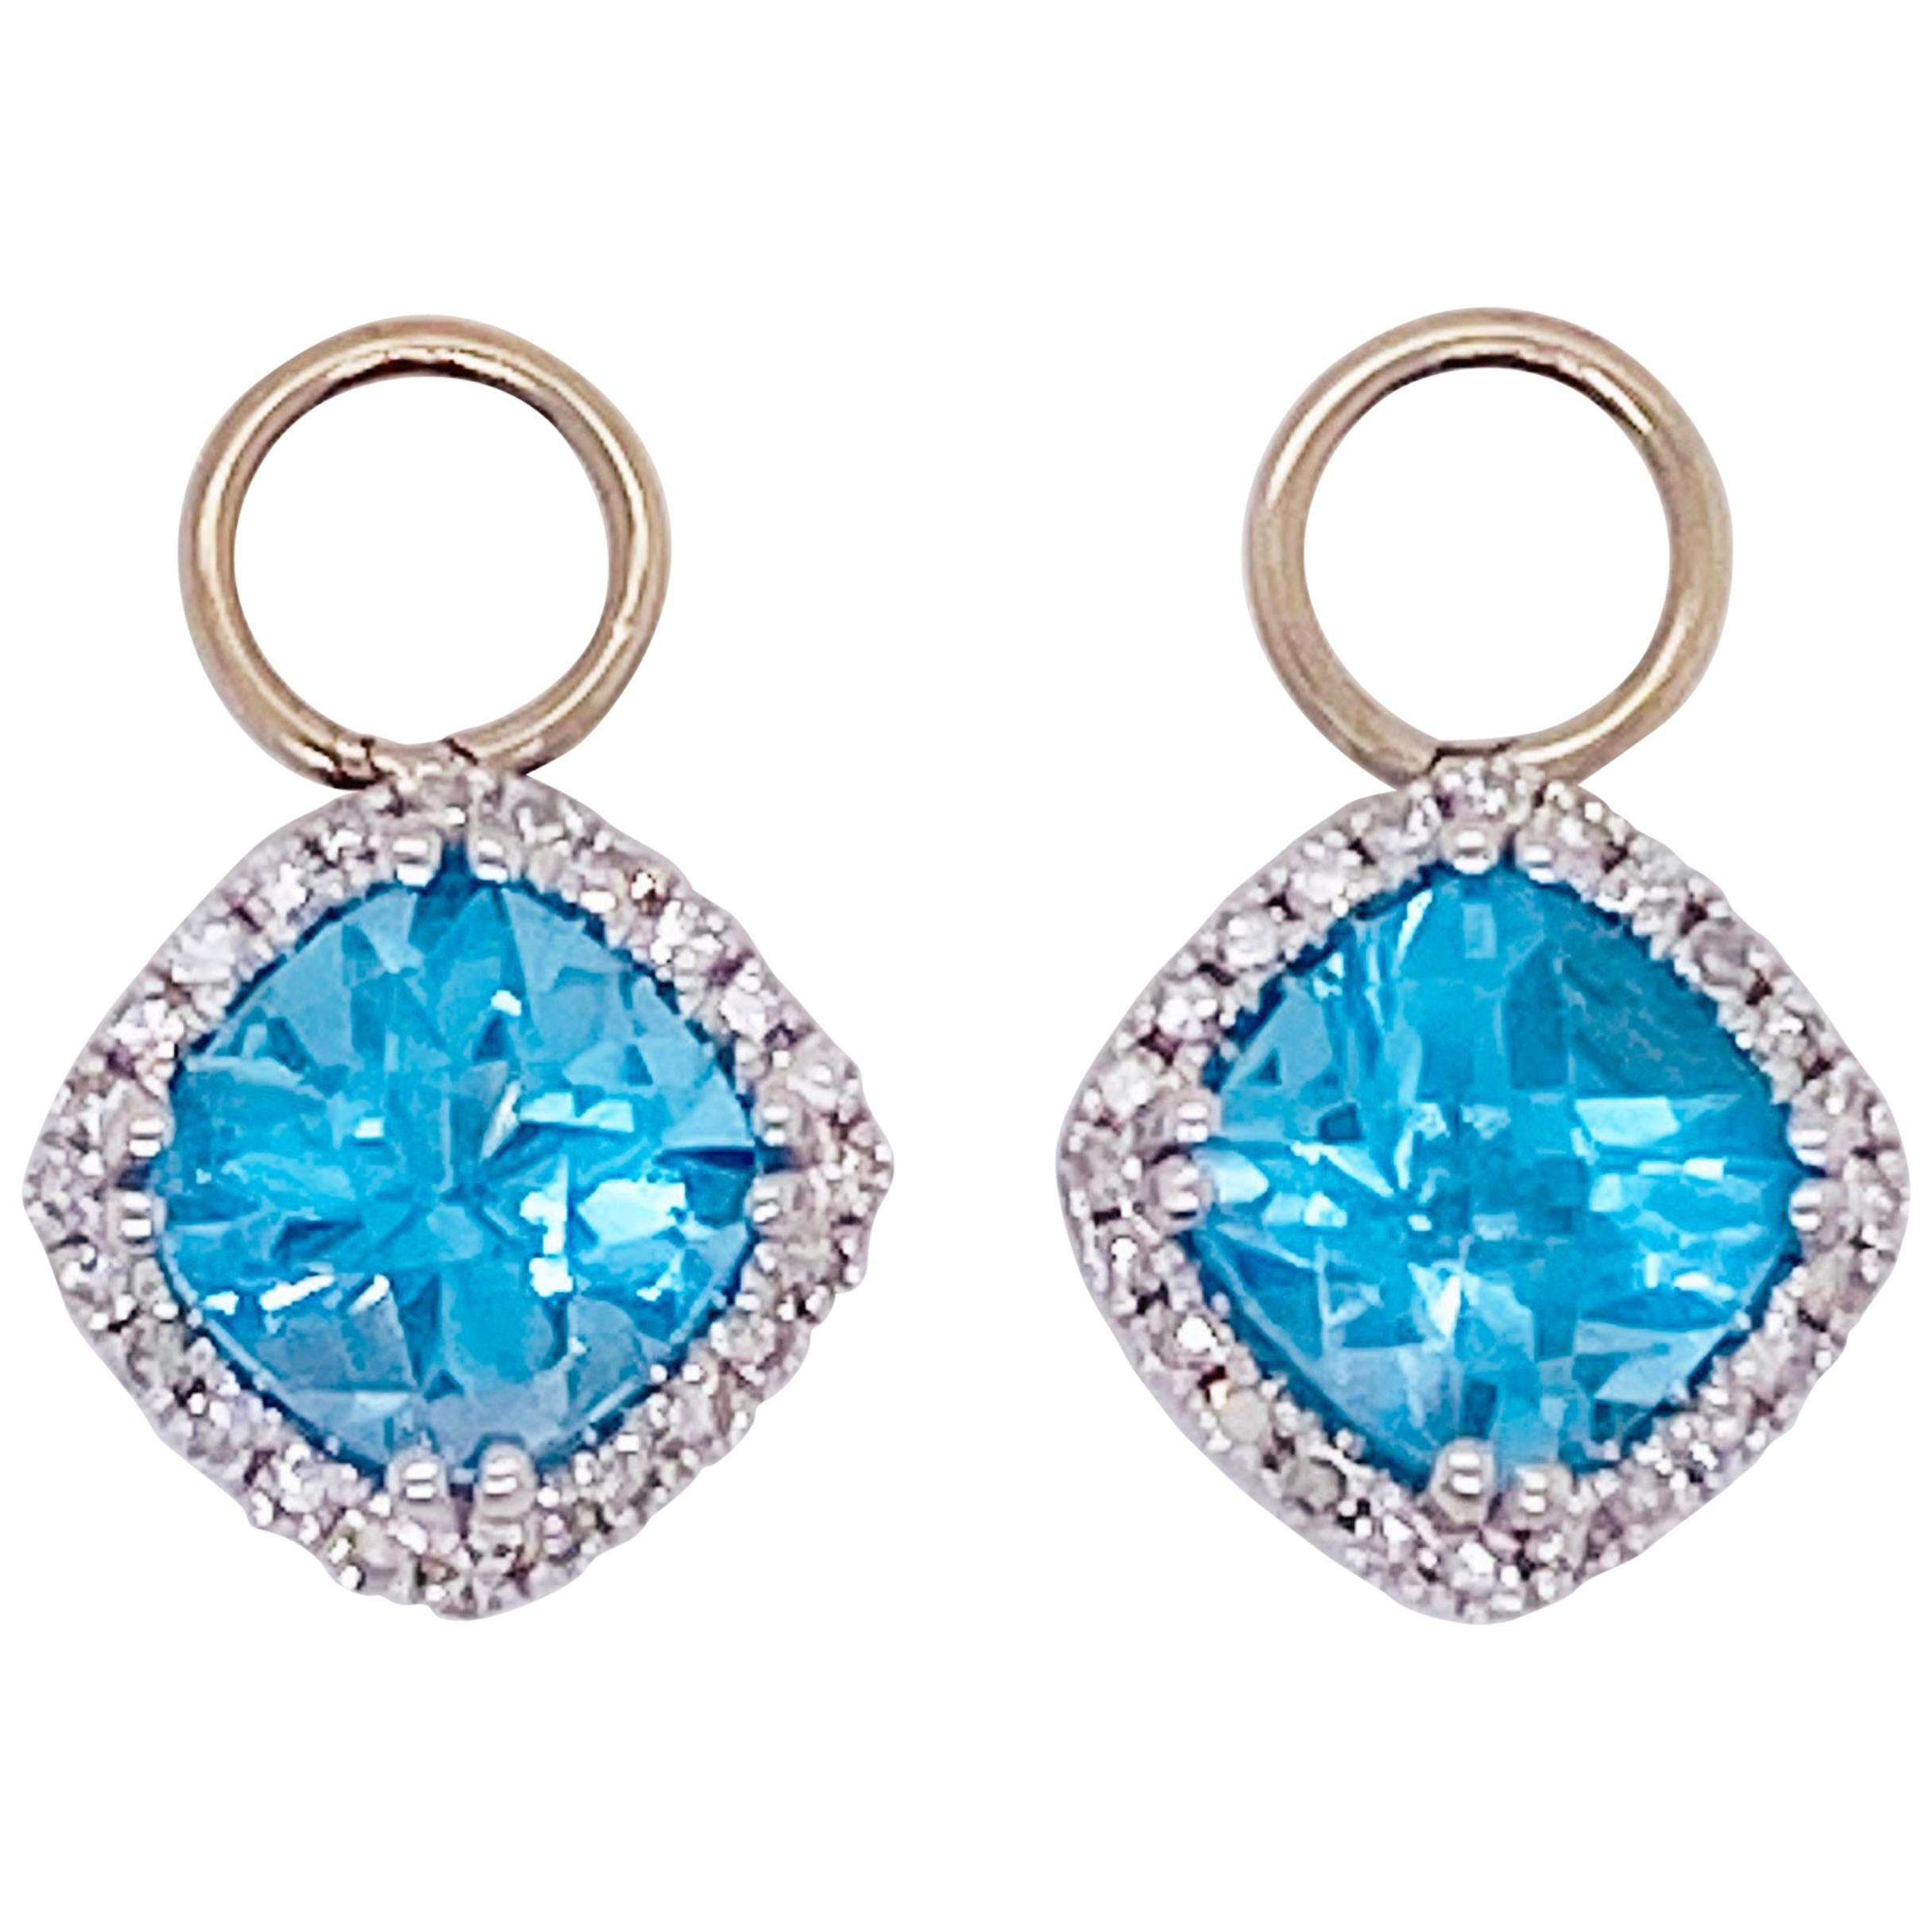 Blue Topaz & Diamond Halo Earring Charms 14 Karat Gold 1/2 Carat Hoop Charm Set